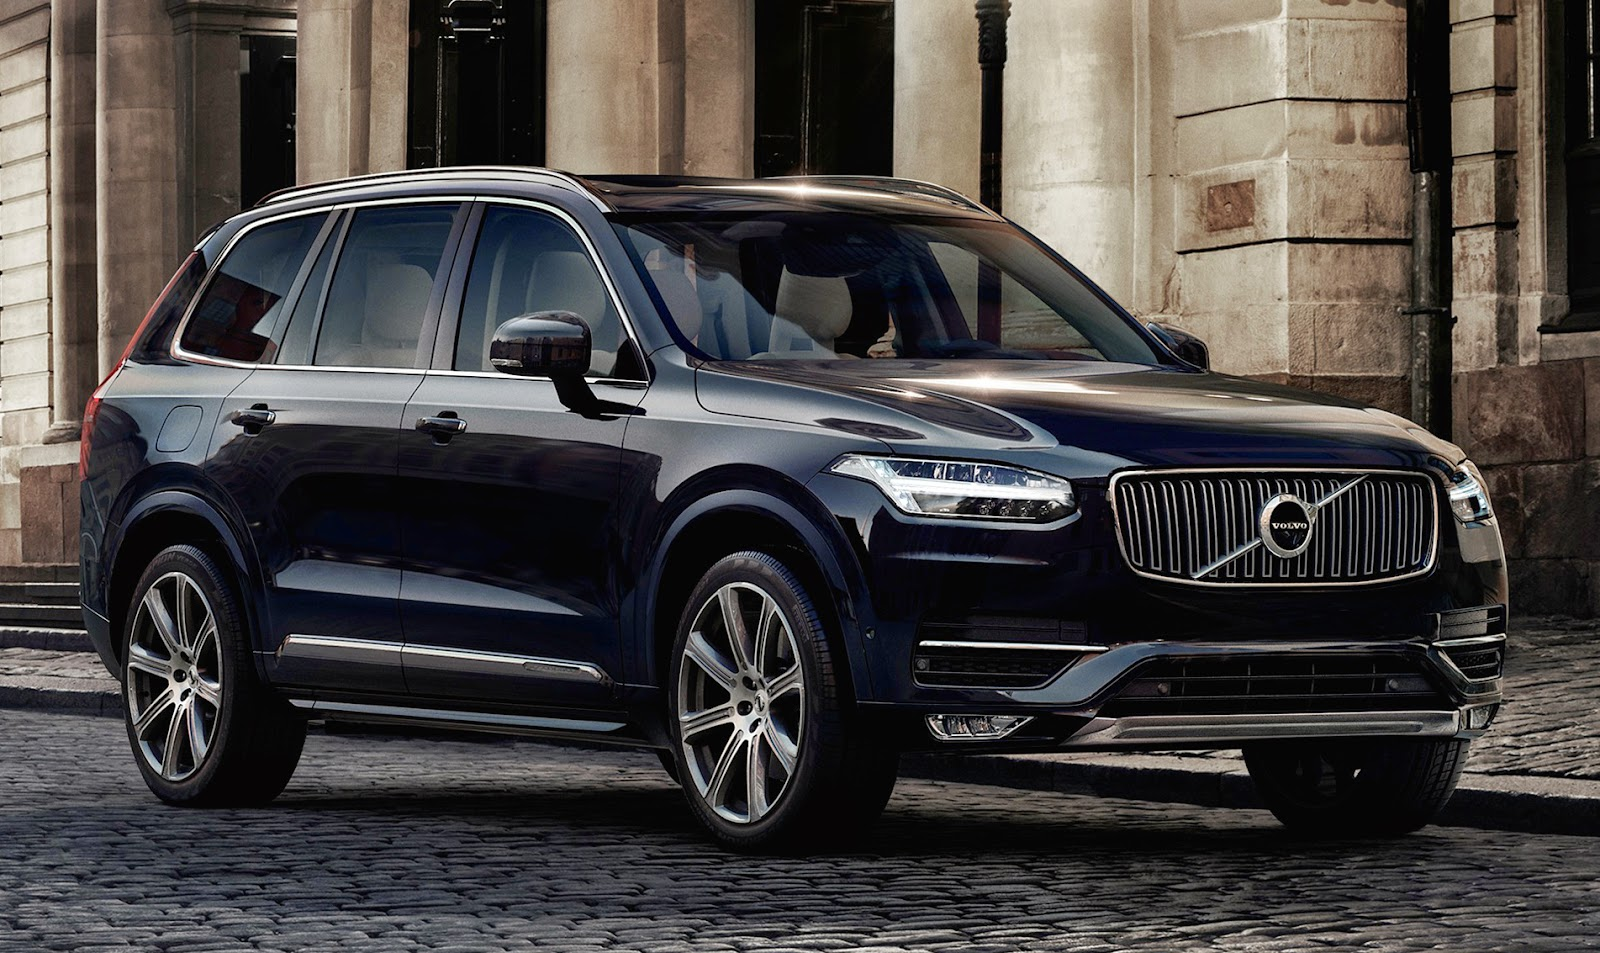 2015 Volvo Xc90 Car Review And Modification